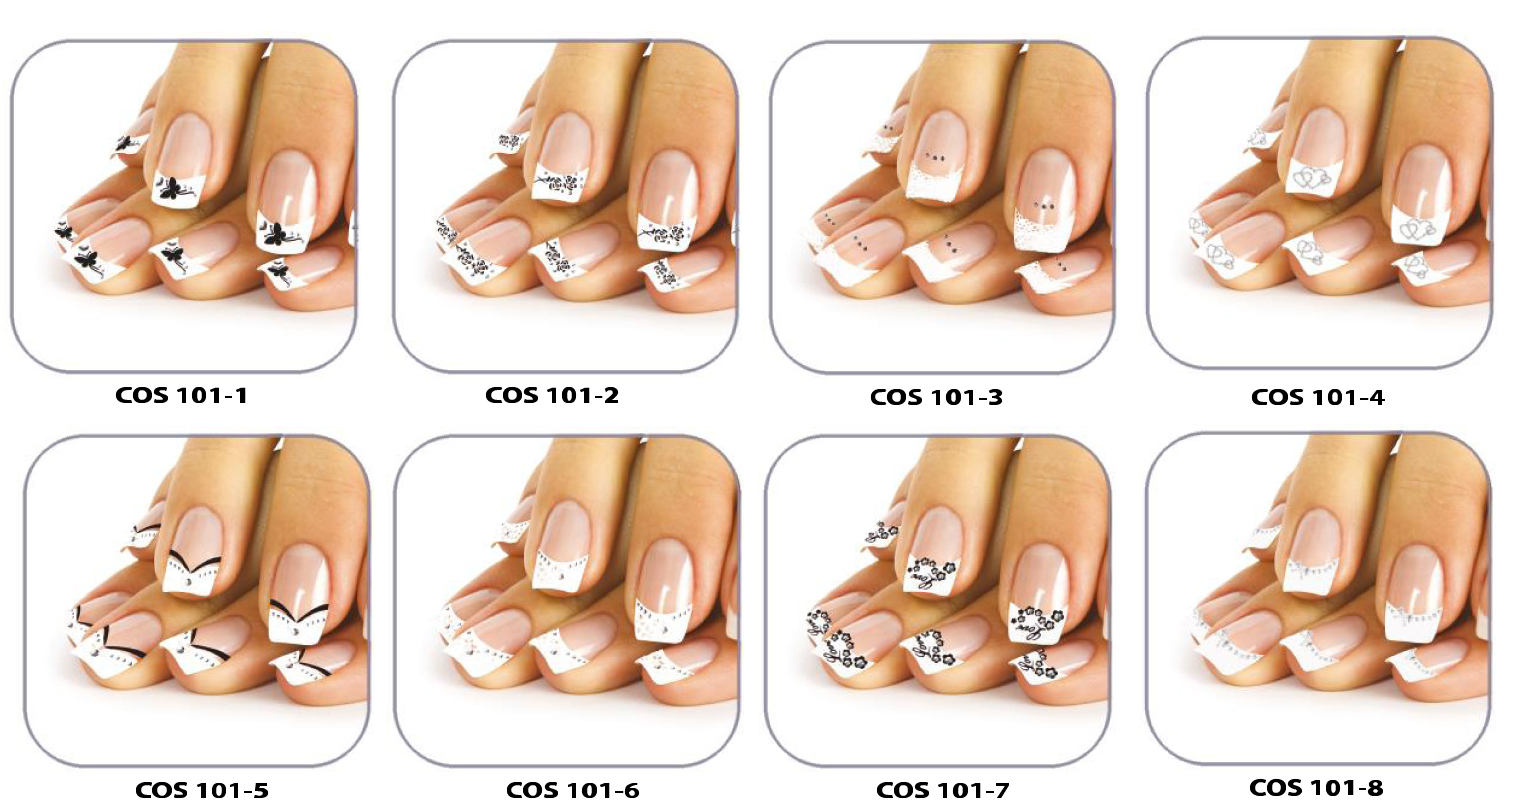 Fabuleux Stickers nail art pour french manicure BY37